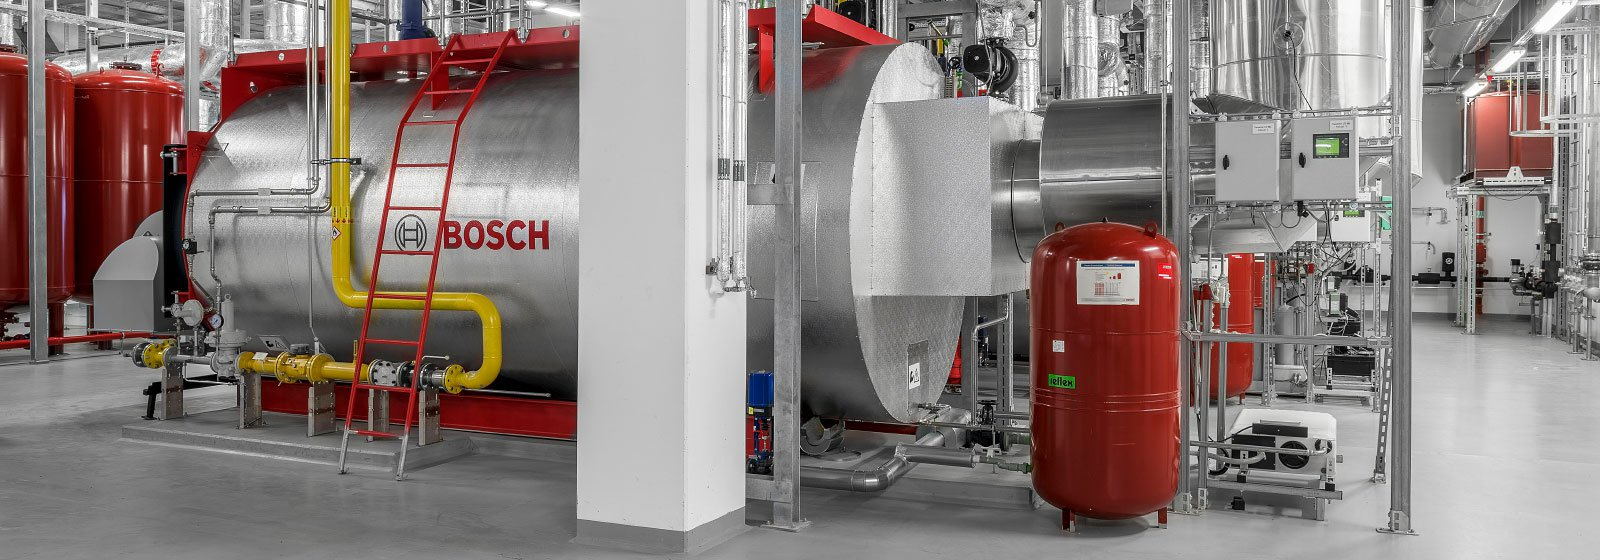 Components for hot water boilers